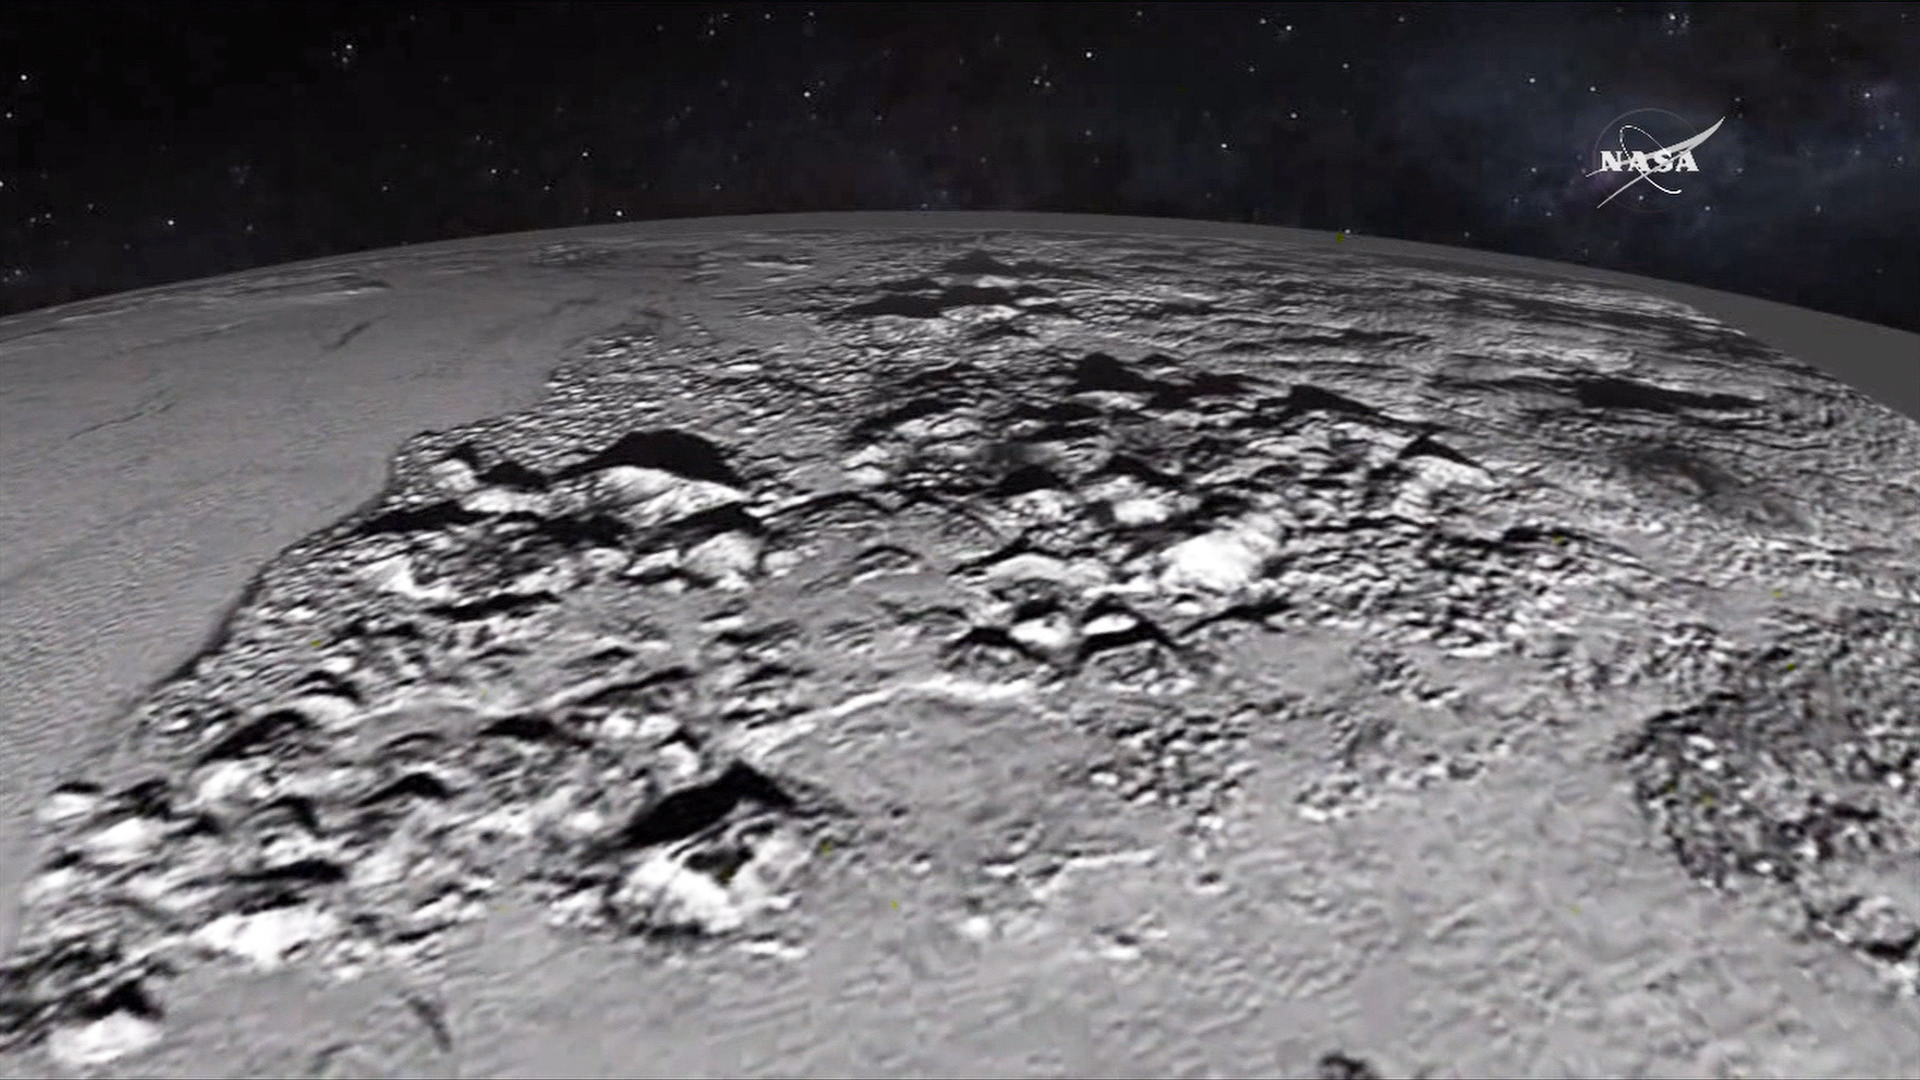 Pluto's Mysterious Moons Nix and Hydra Come Into Focus in New Images